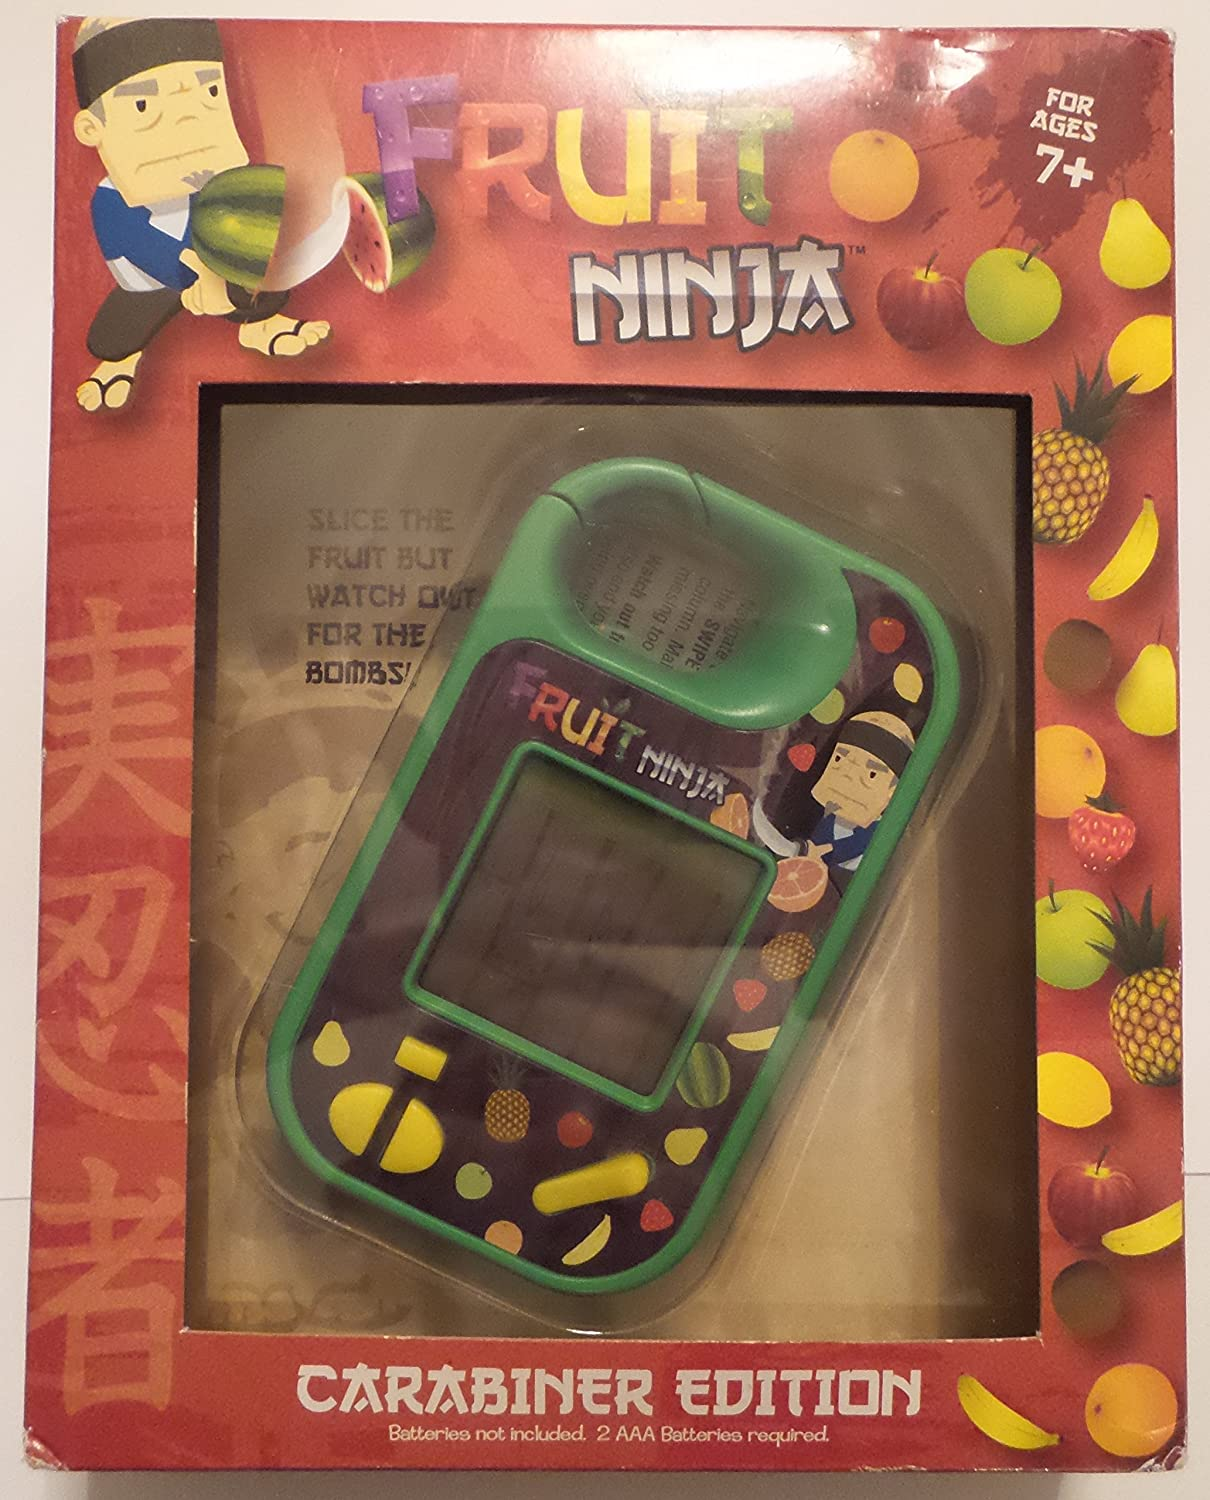 Basic Fun Fruit Ninja Mini Handheld Game Carabiner Edition